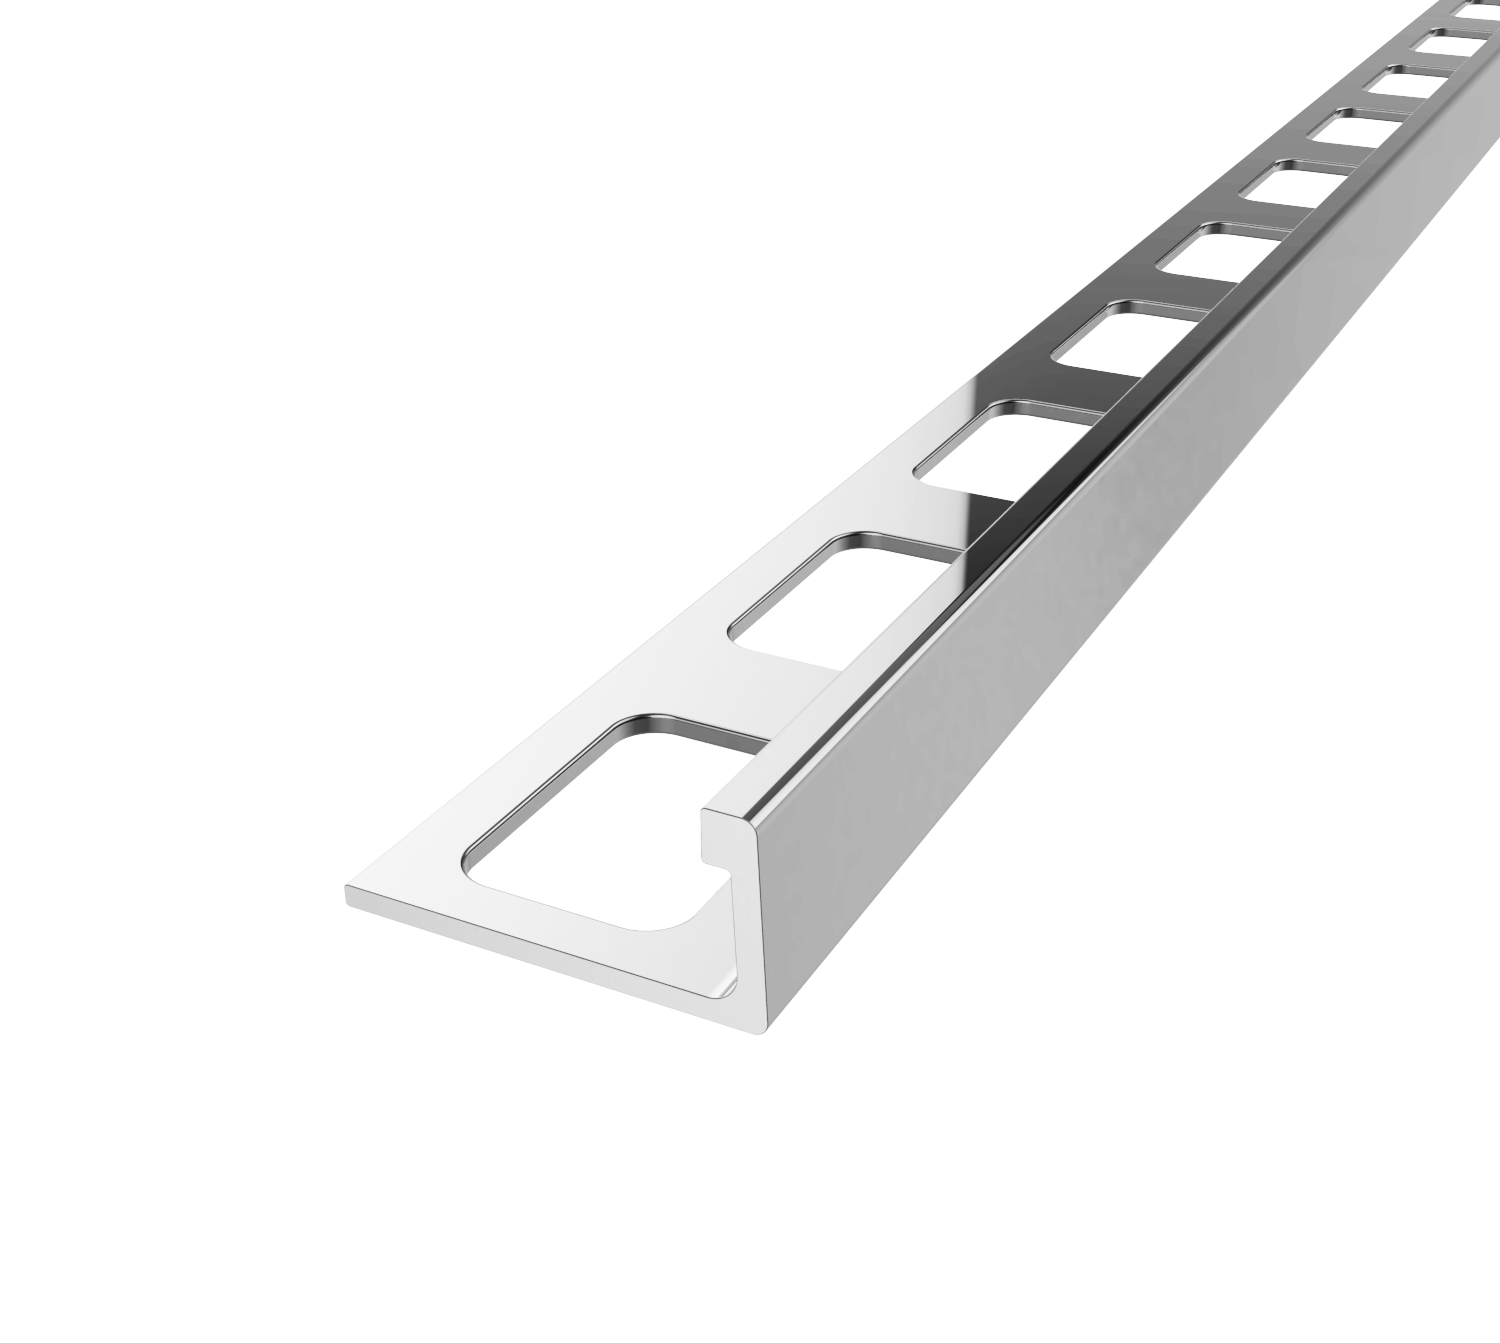 Essential Bright Anodized Silver 8 mm L-Shape Aluminum Tile Edging Trim